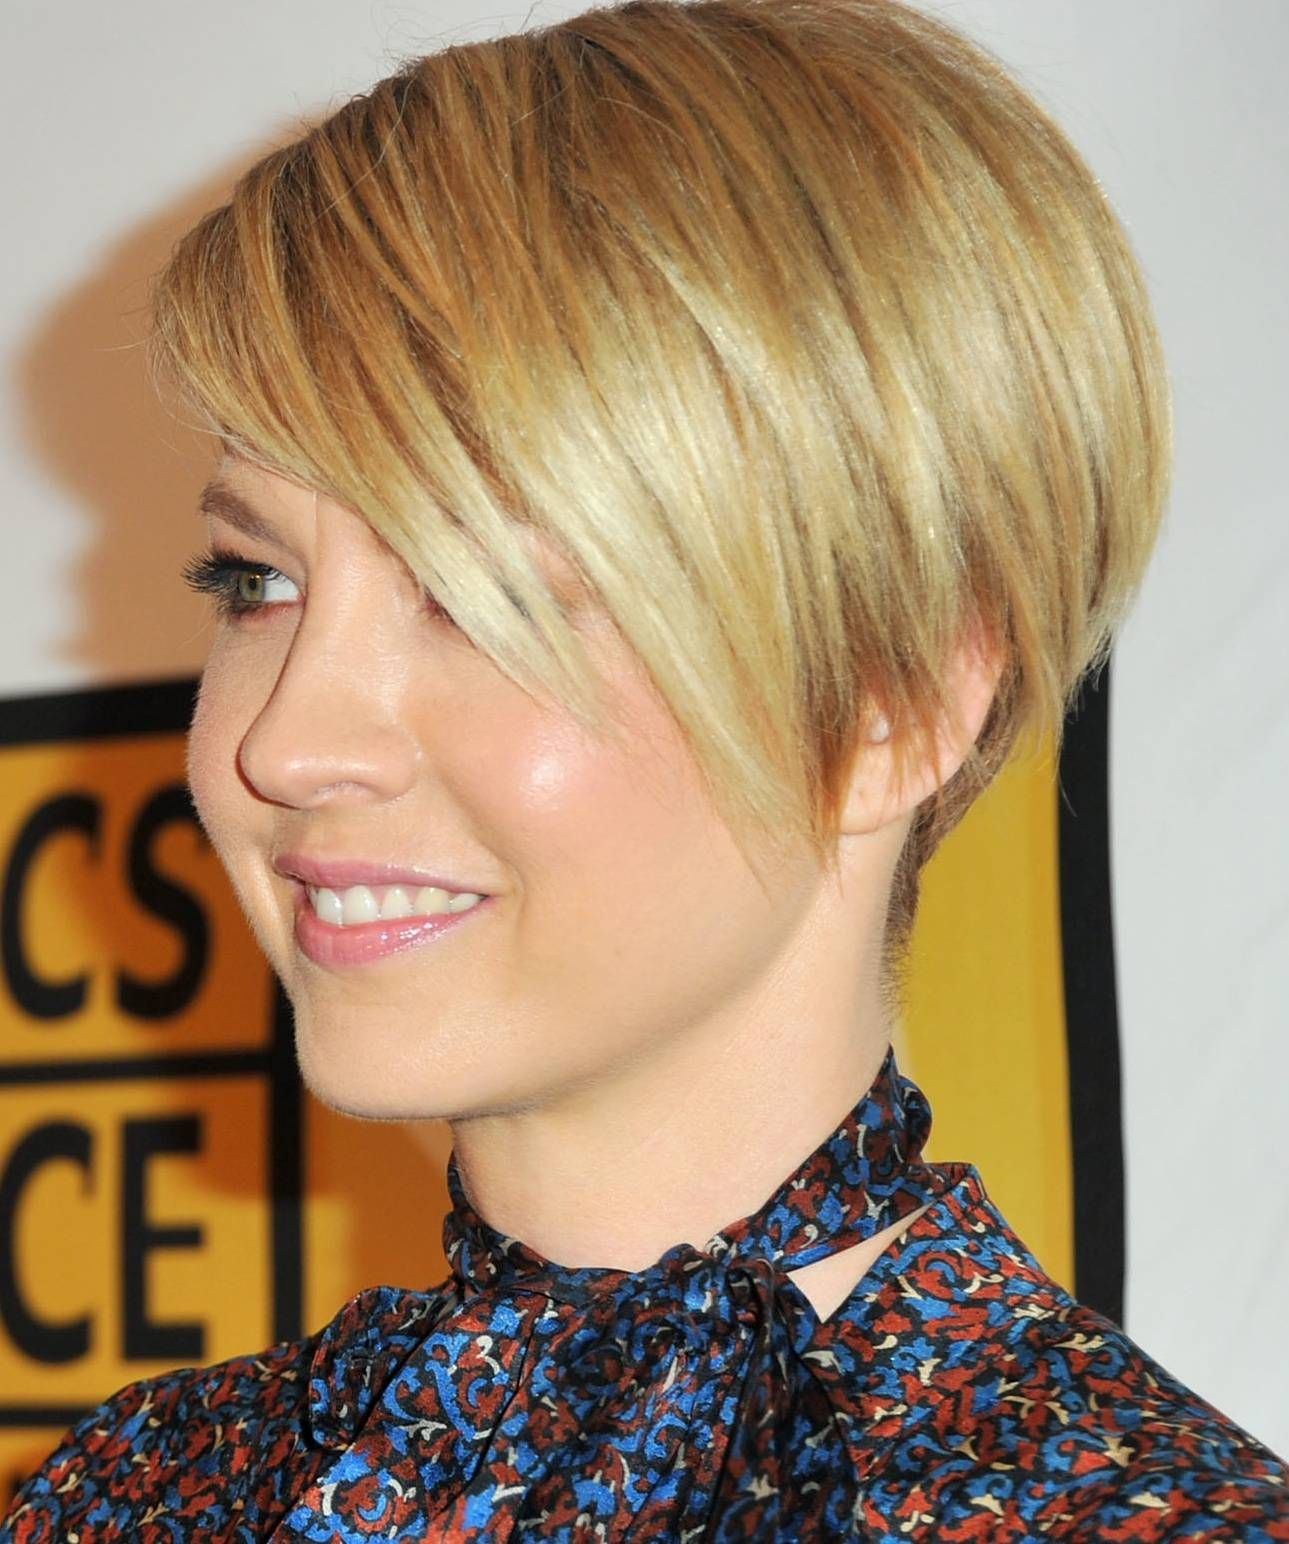 Image result for jenna elfman hair h a i r s t y l e s